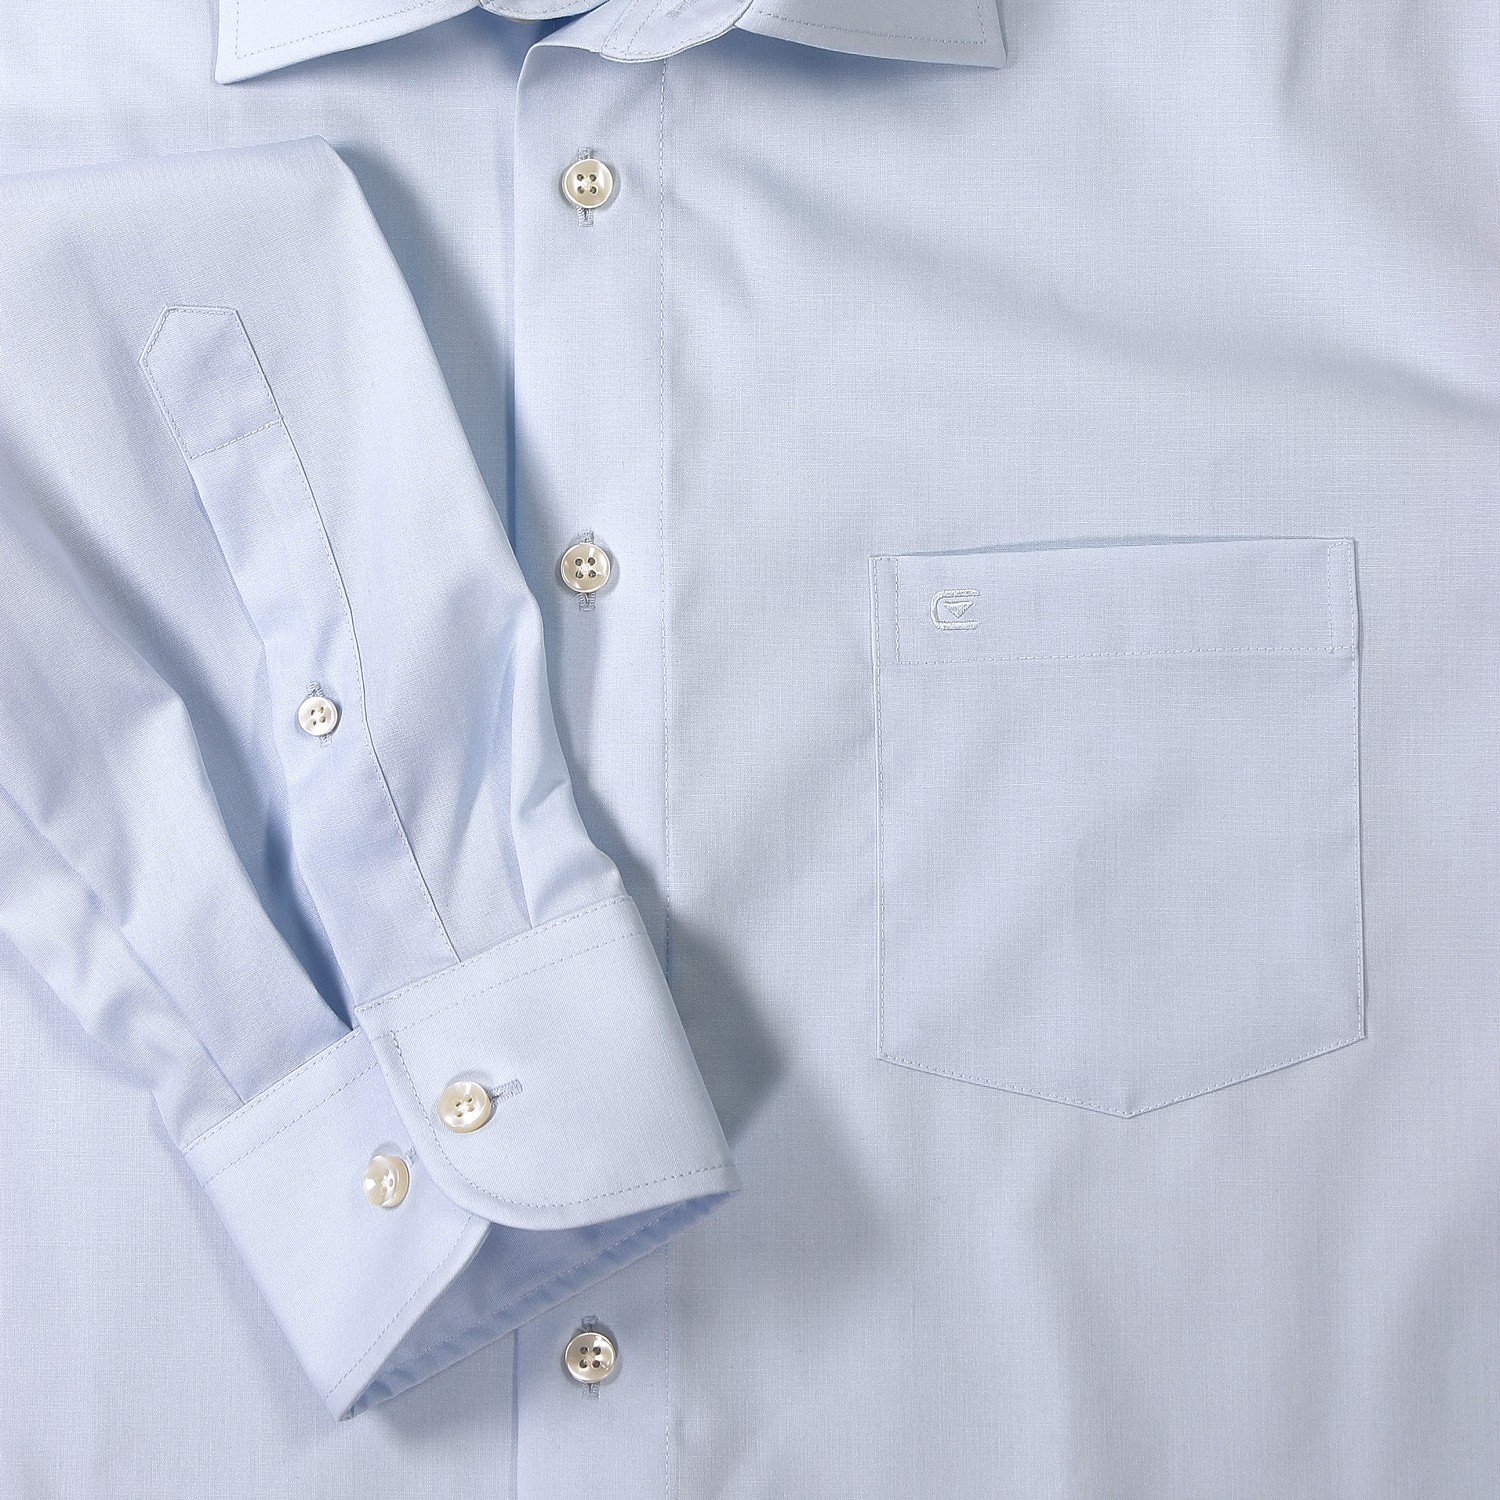 Detail Image to Light blue shirt by Casamoda in plus size up to 7XL